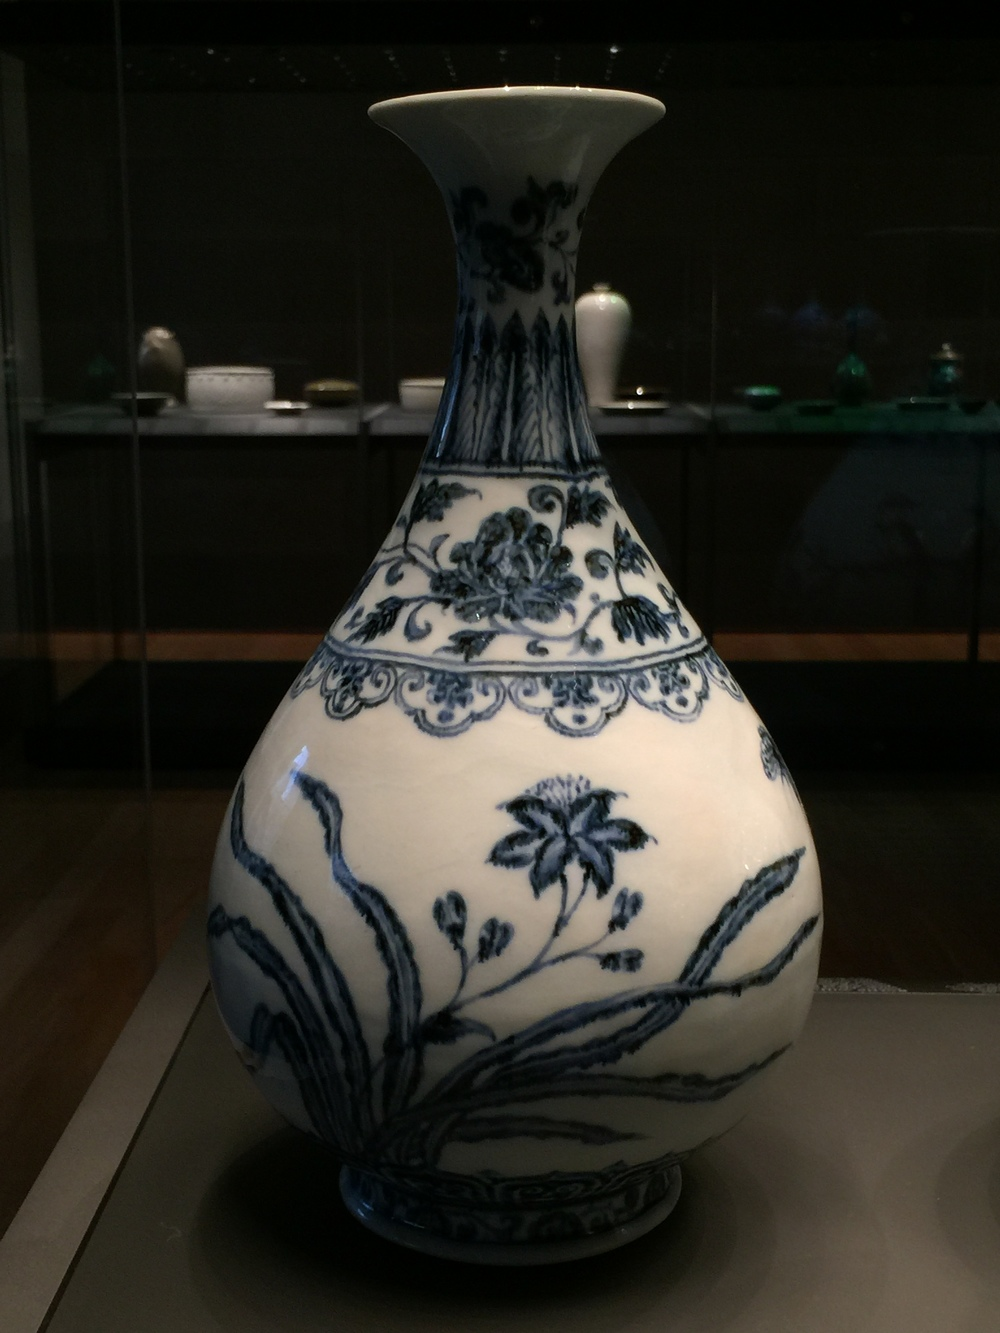 Chinese-Porcelain-British-Museum-Percival-David-jessewaugh.com-38.jpg